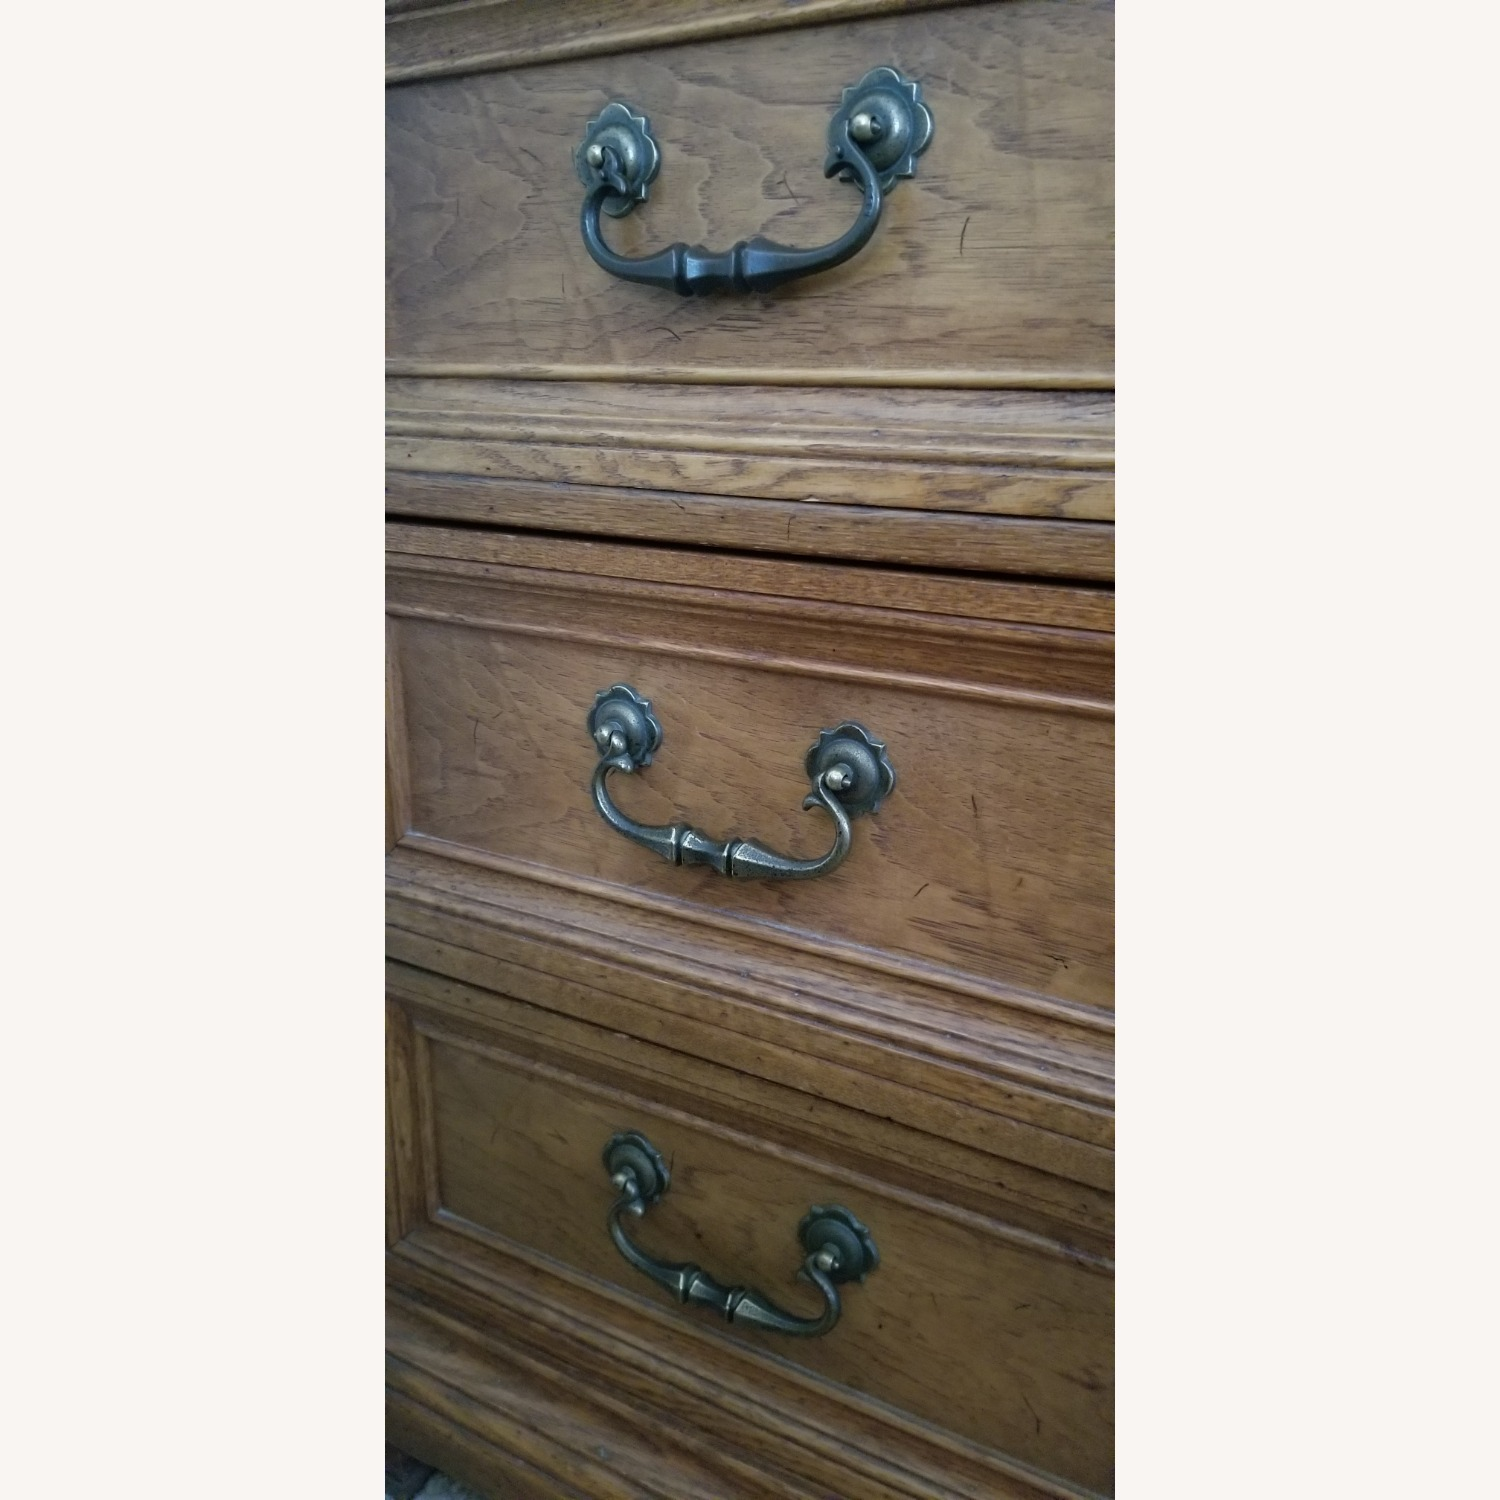 Vintage Drexel Dresser with two Large Mirrors - image-12